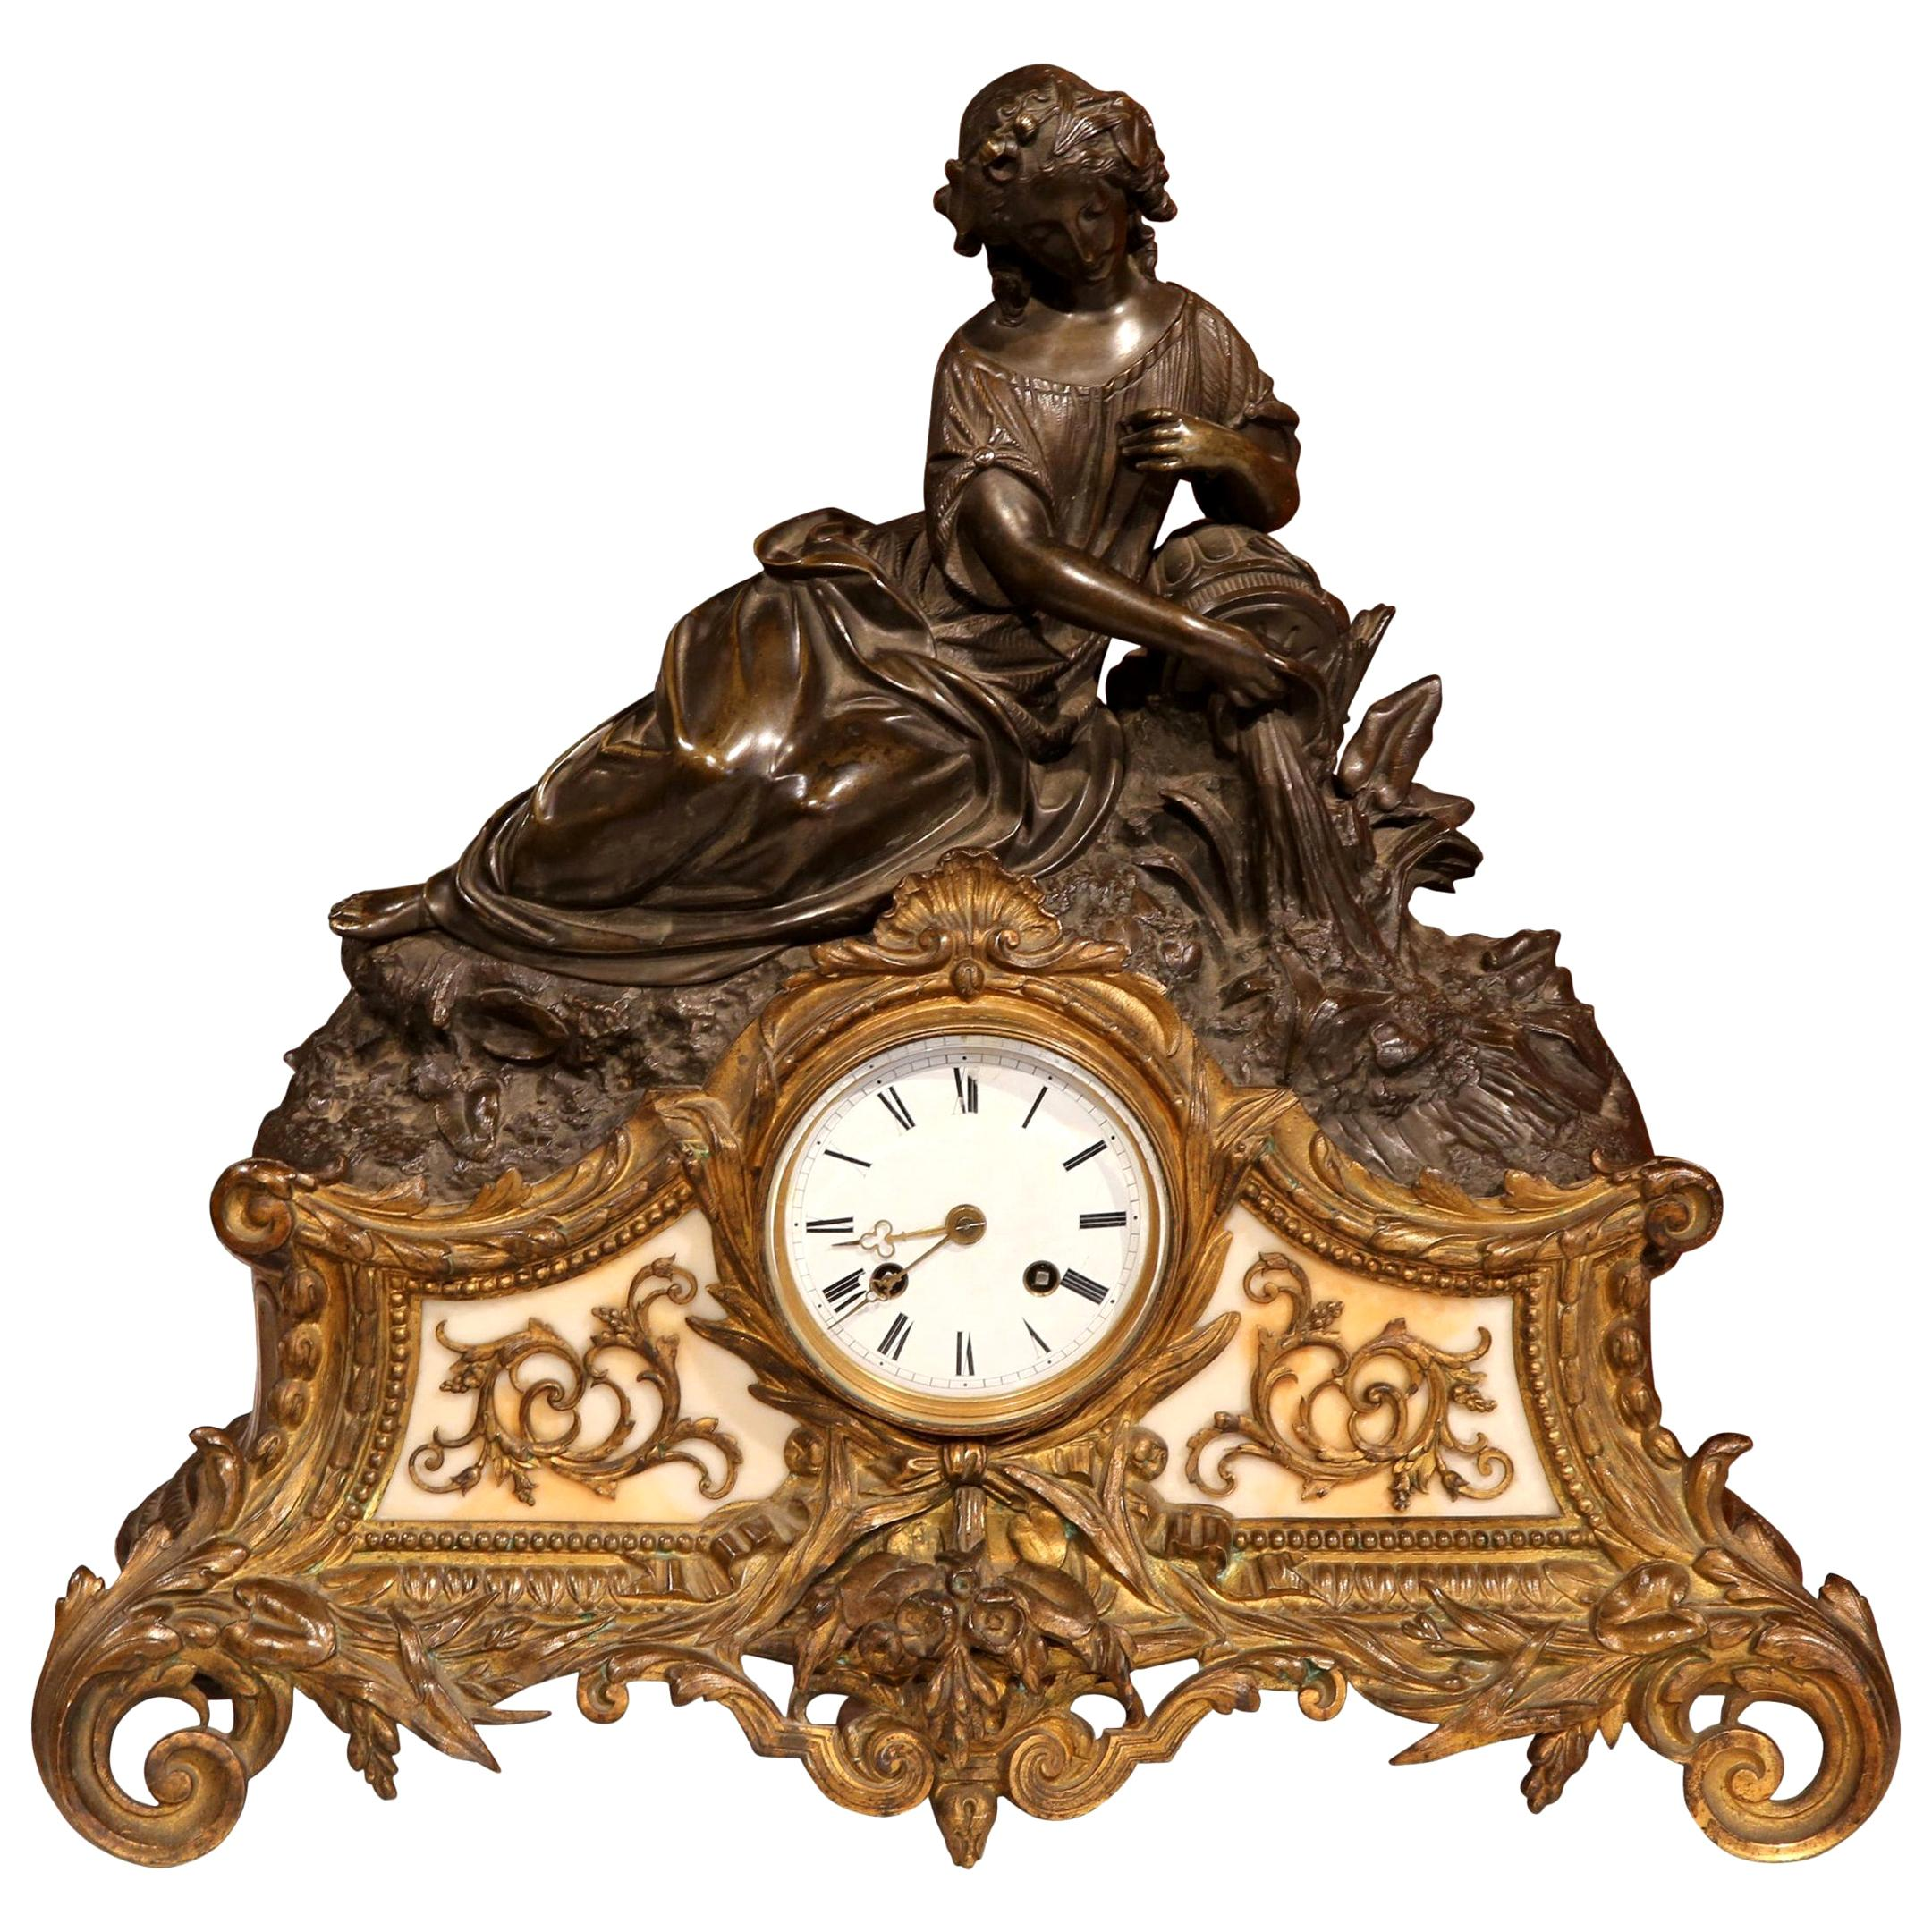 19th Century French Louis XV Patinated Bronze and Marble Mantel Clock